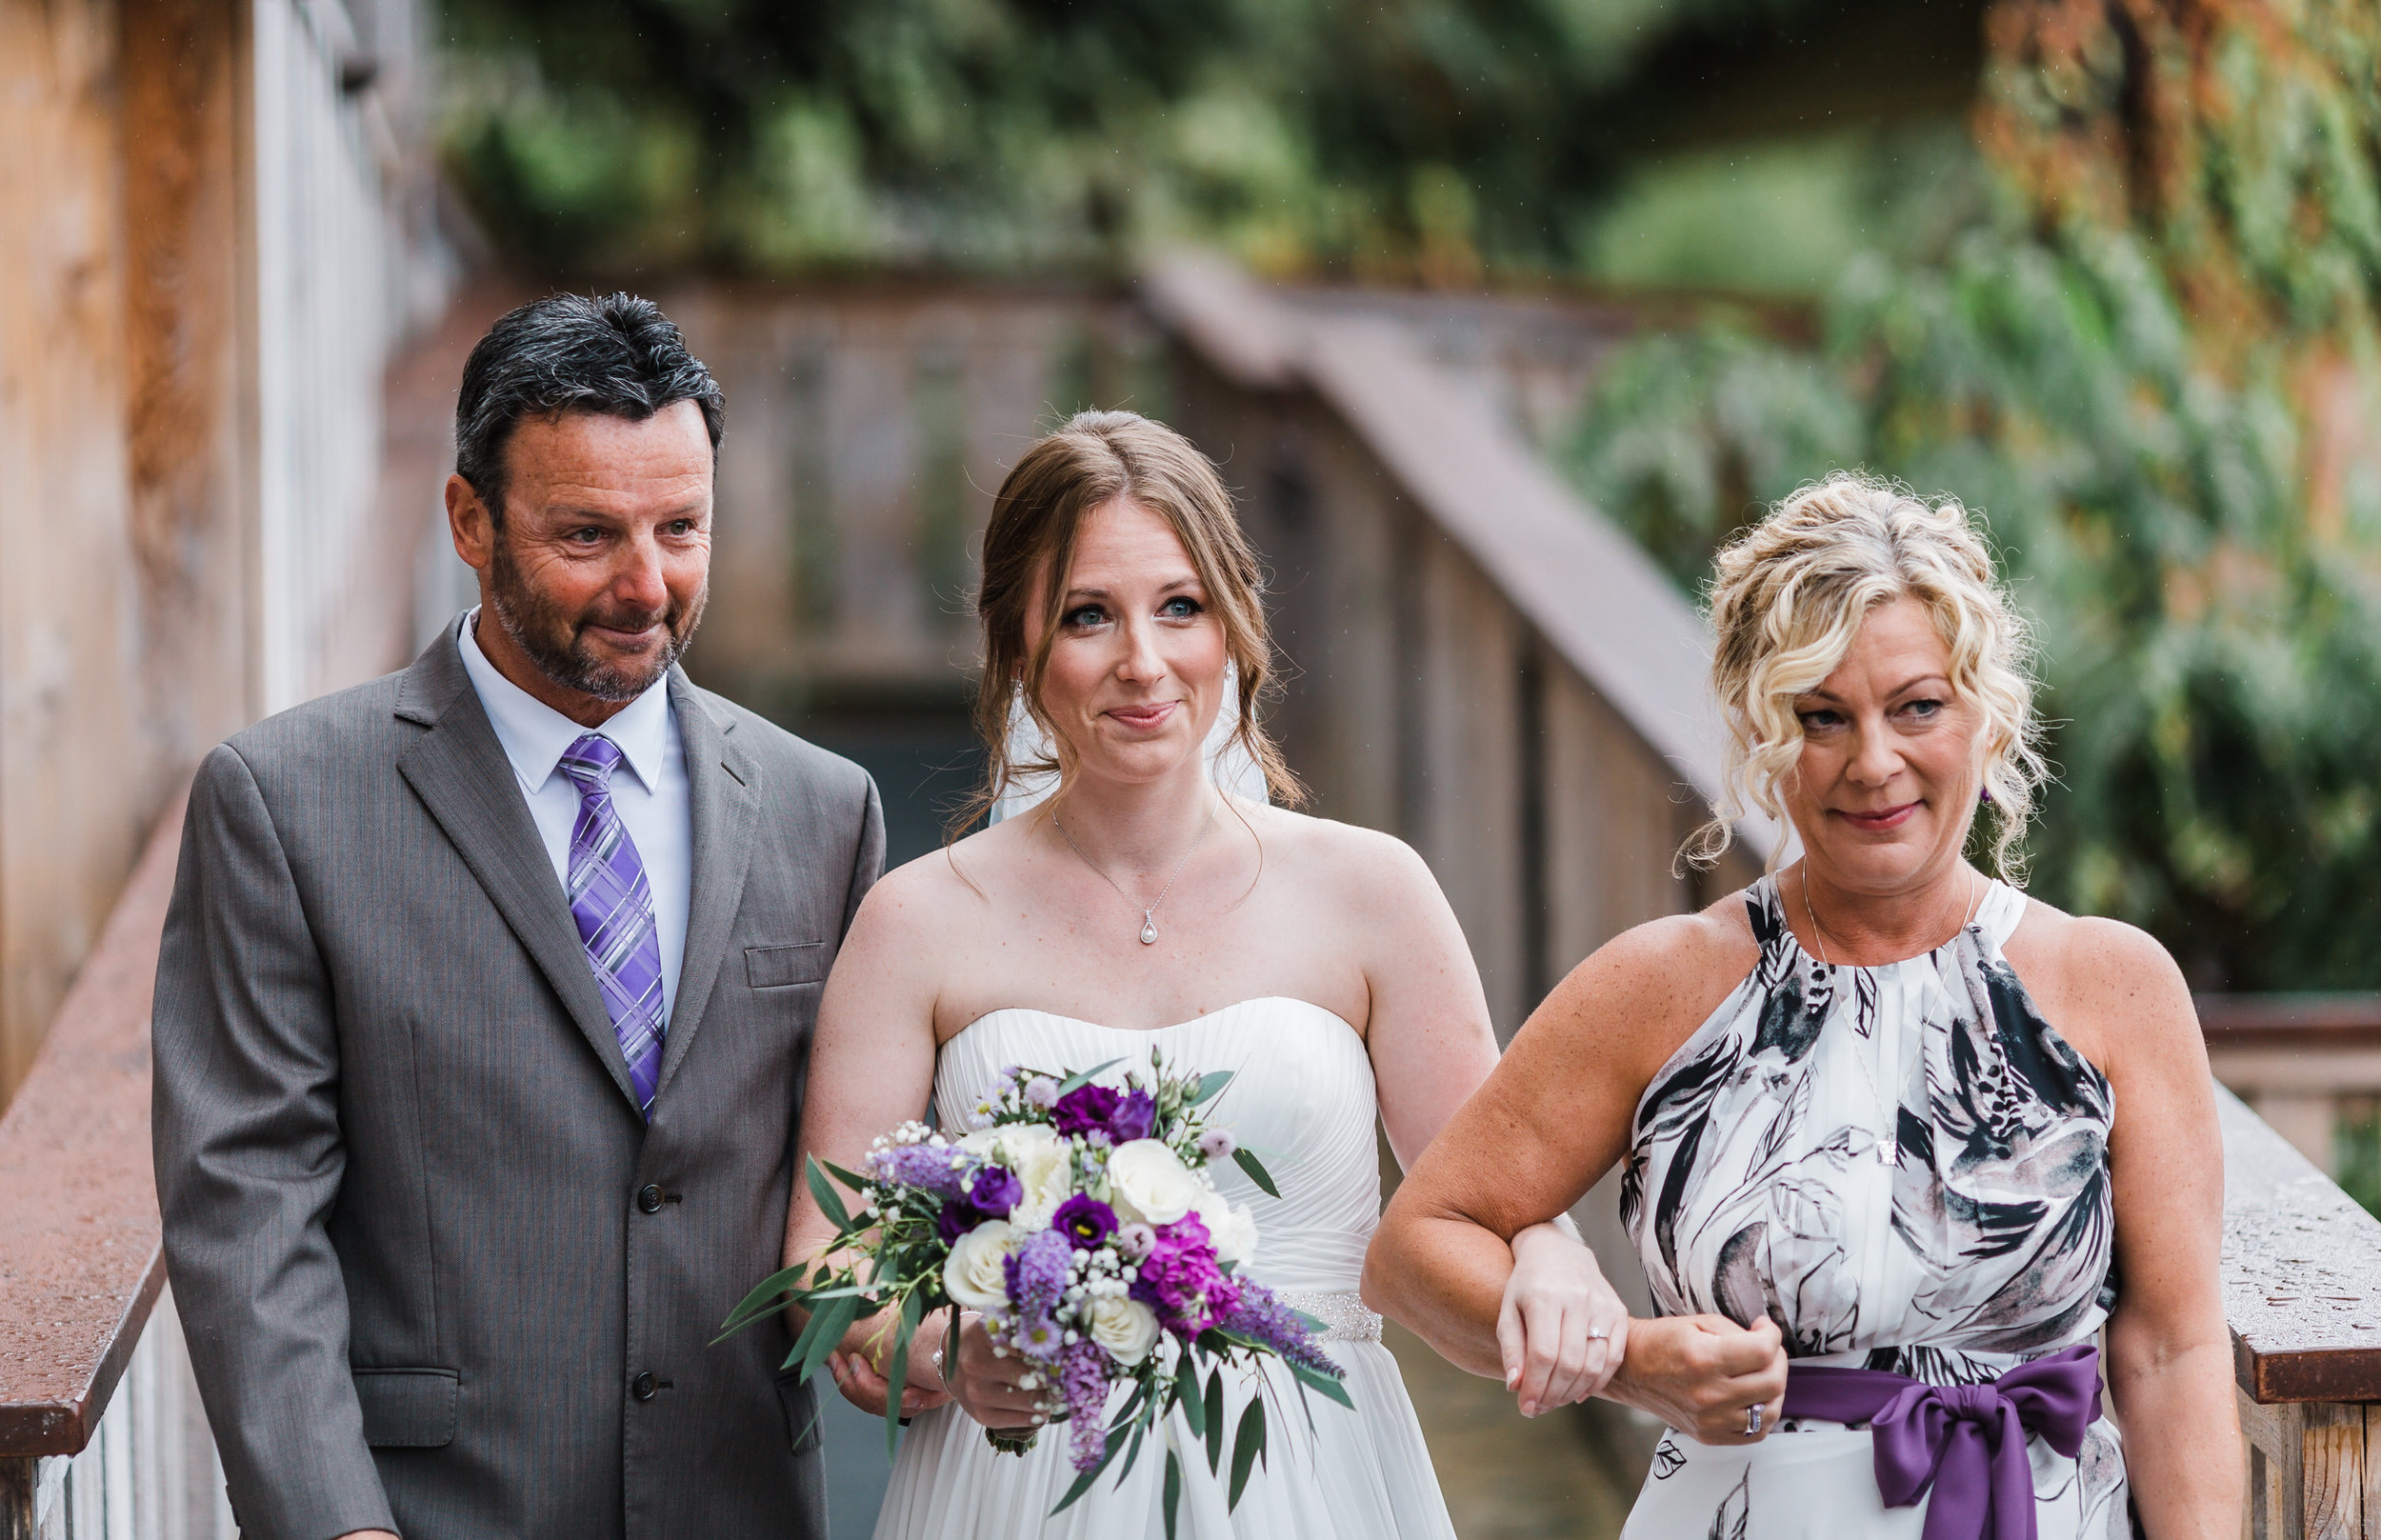 West Coast Wilderness Lodge Wedding Photos - Vancouver Wedding Photographer & Videographer - Sunshine Coast Wedding Photos - Sunshine Coast Wedding Photographer - Jennifer Picard Photography - IMG_0132.jpg